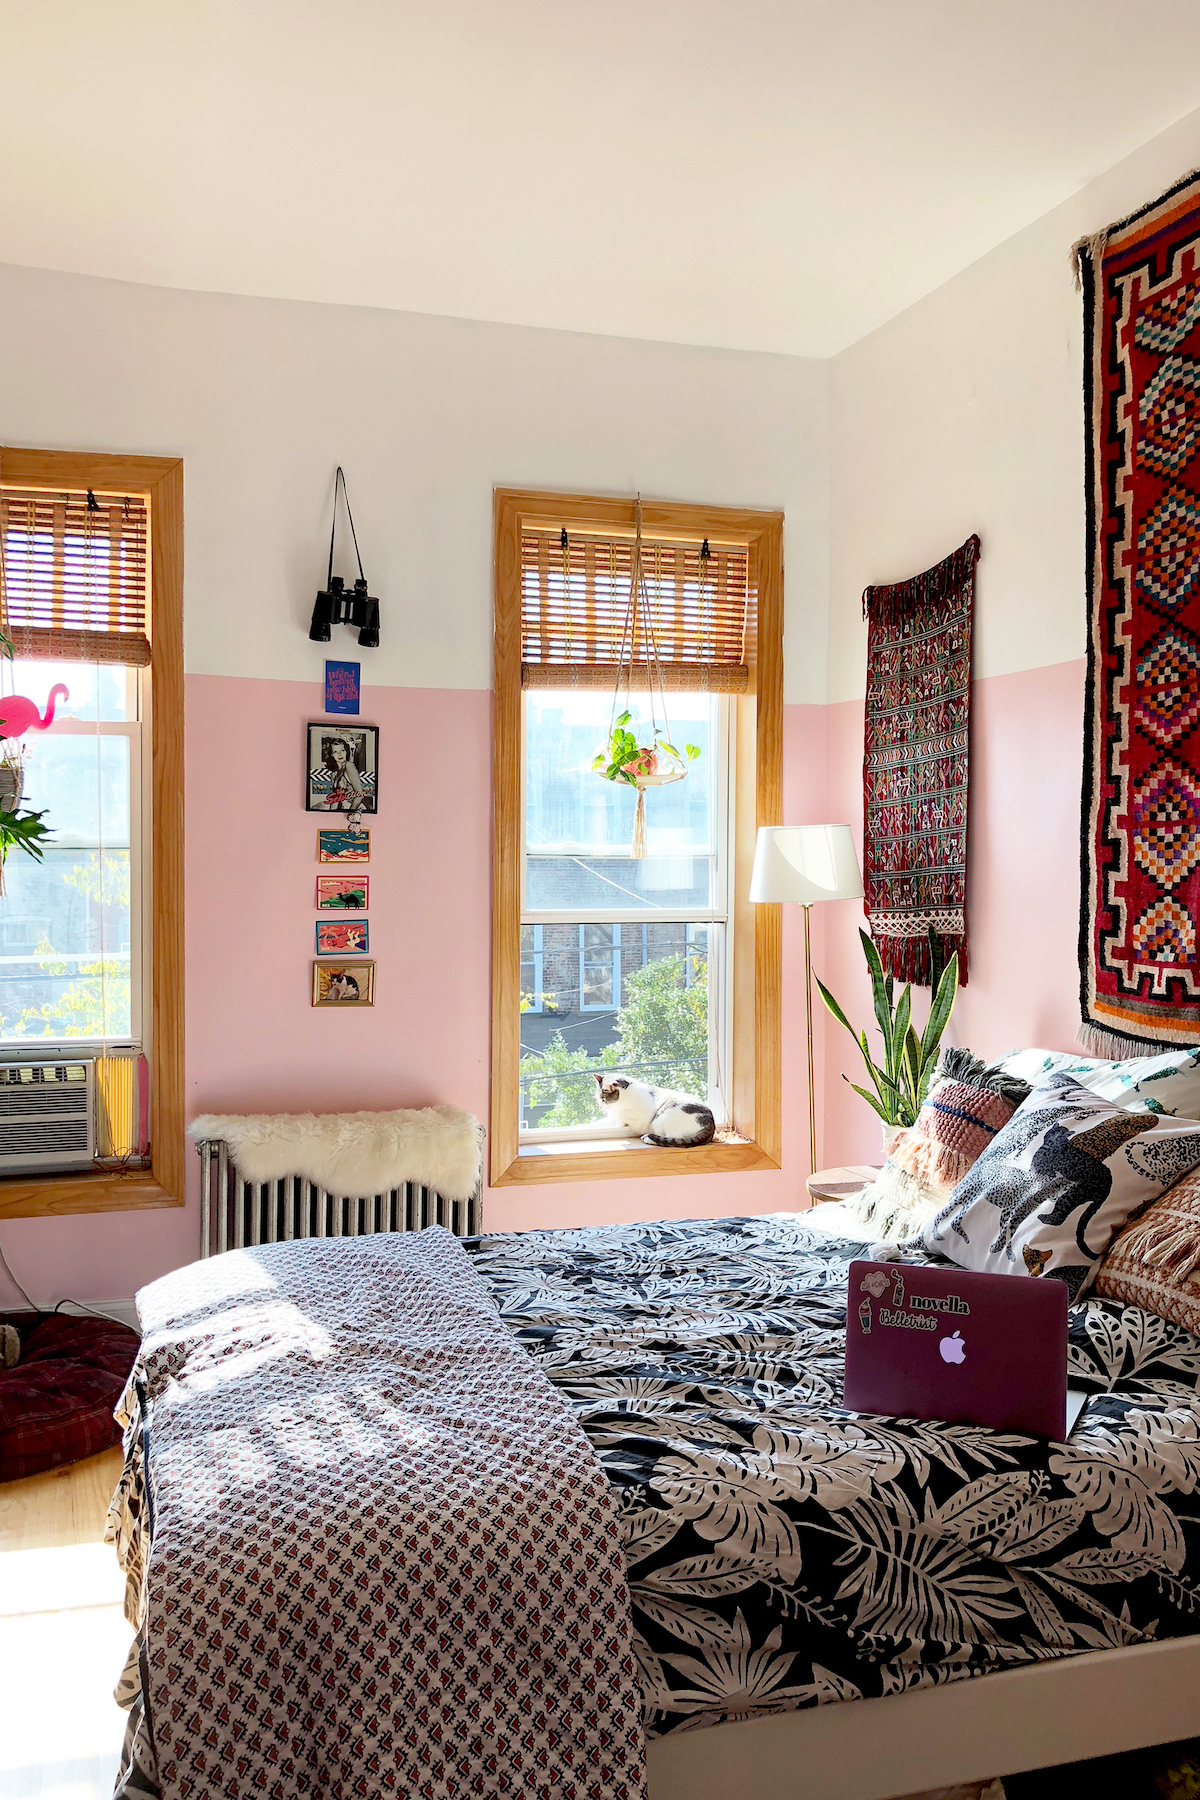 In Brooklyn, A Pink Apartment Bursting with Vibrant